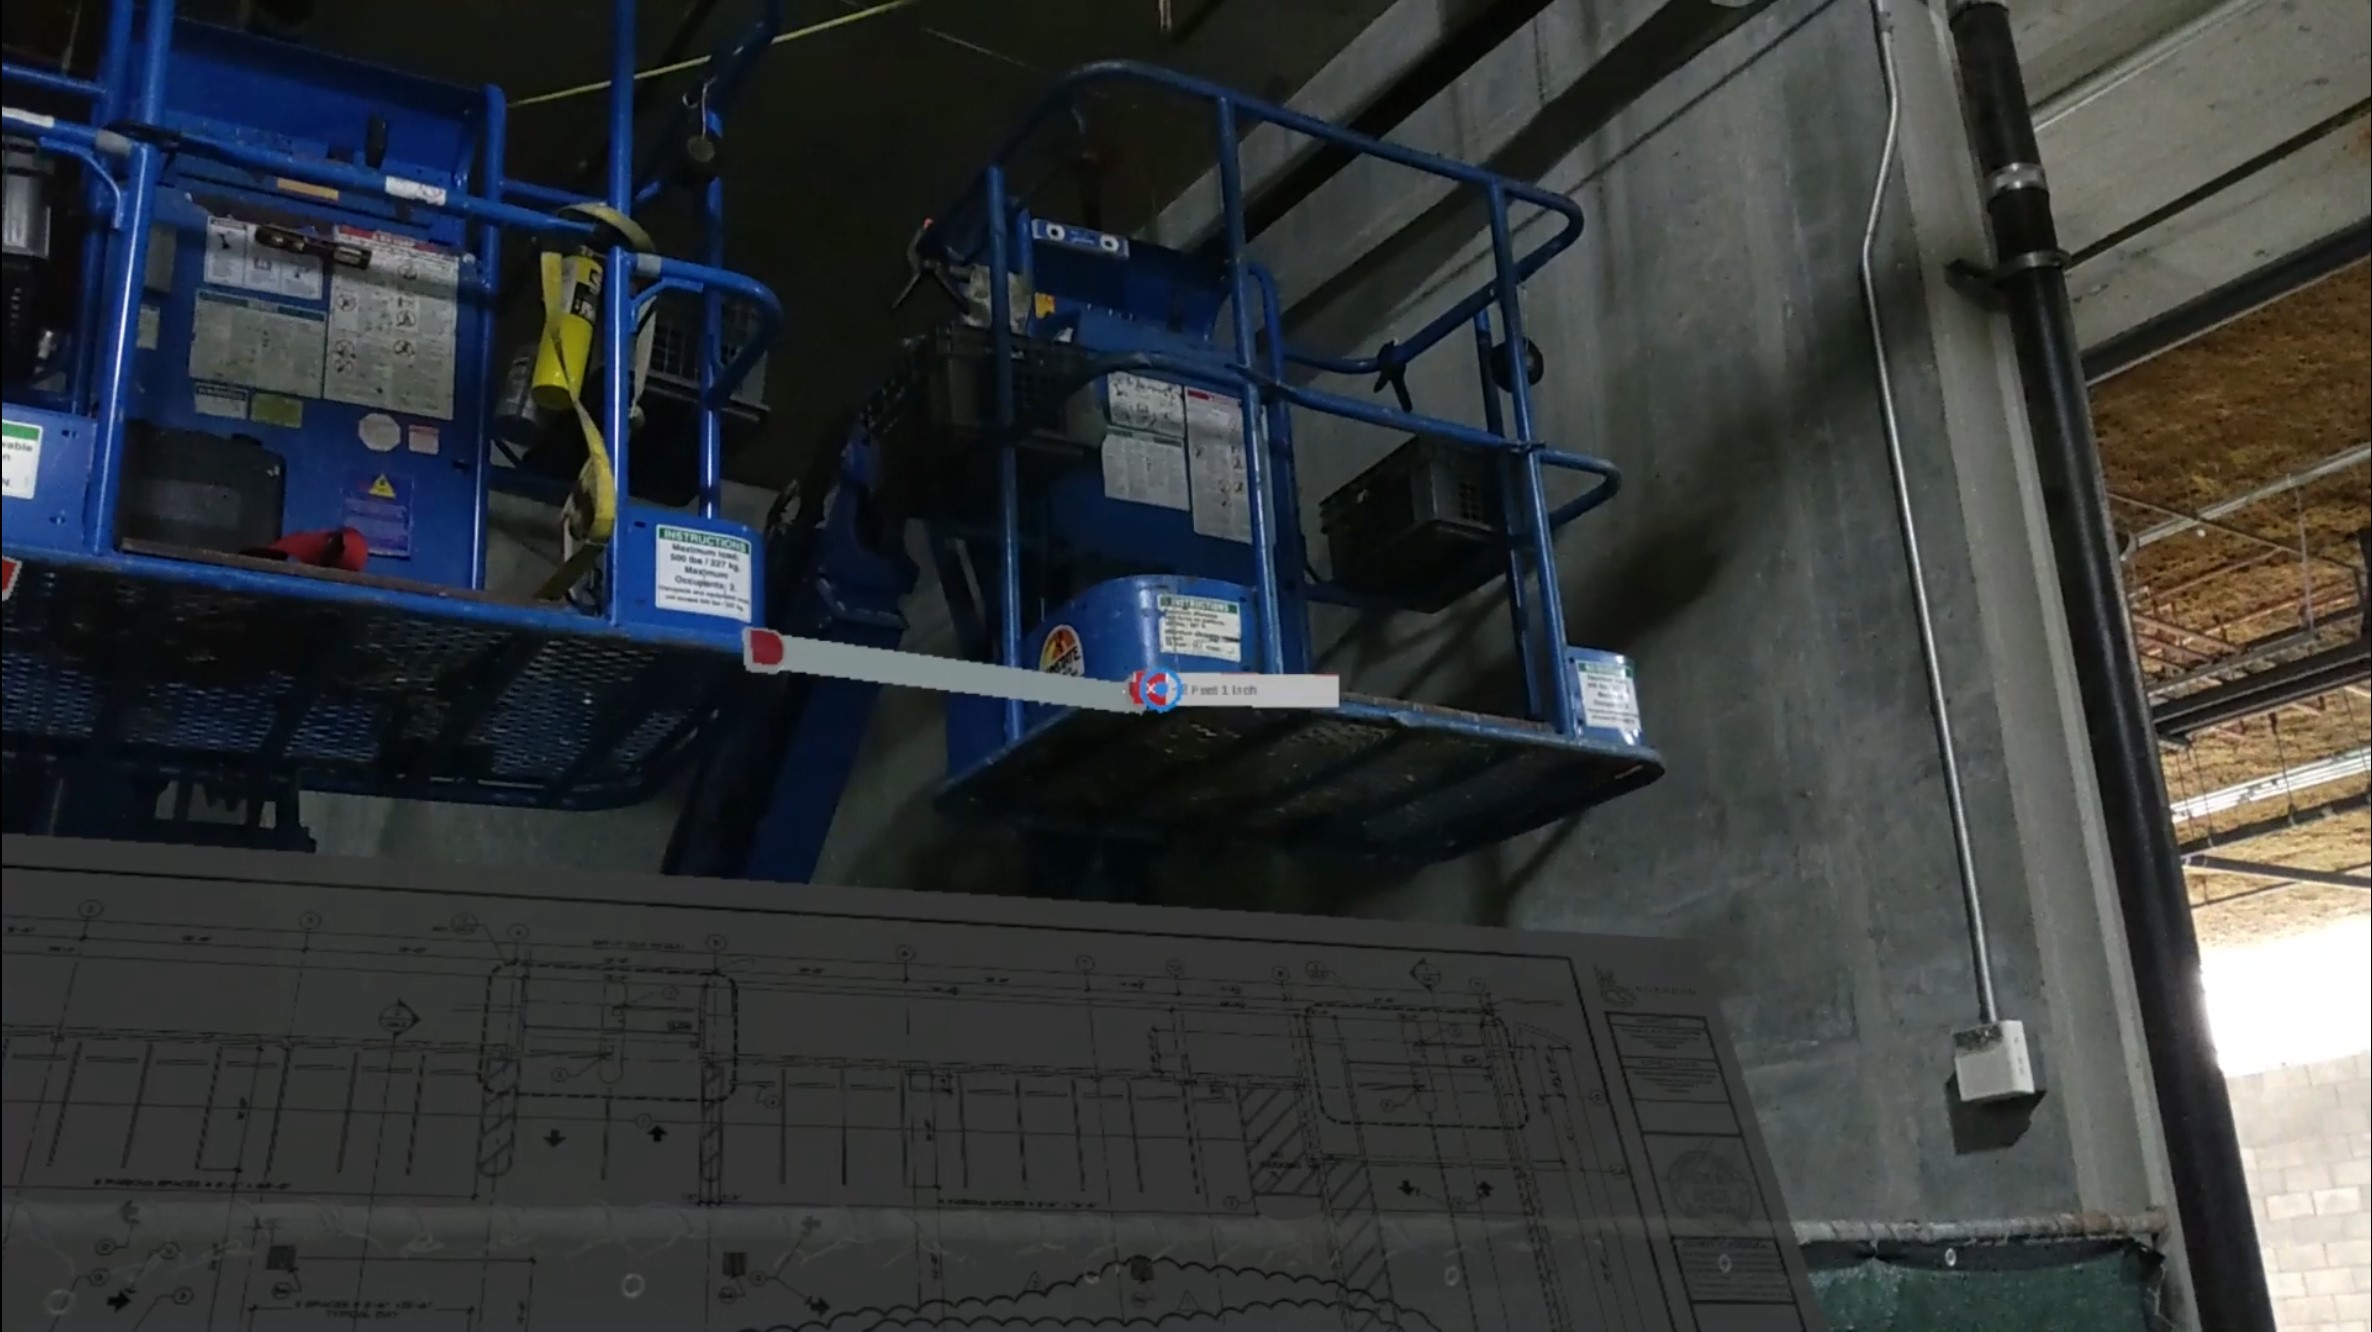 Construction site with AR annotations